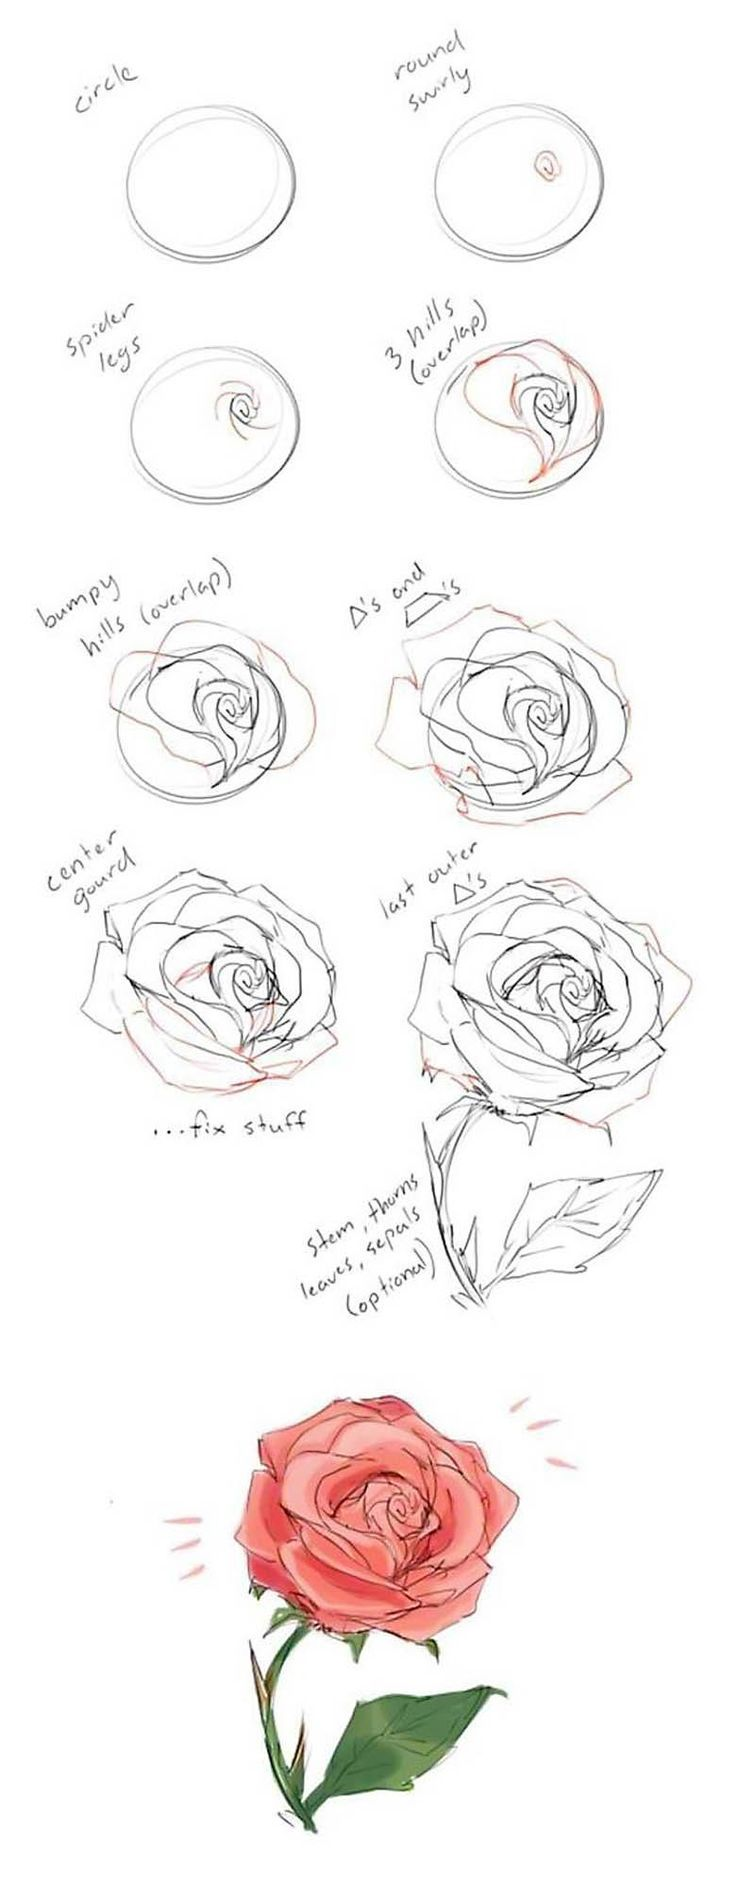 How to draw flowers and turn these drawings into really cool wall art - Craft-Mart